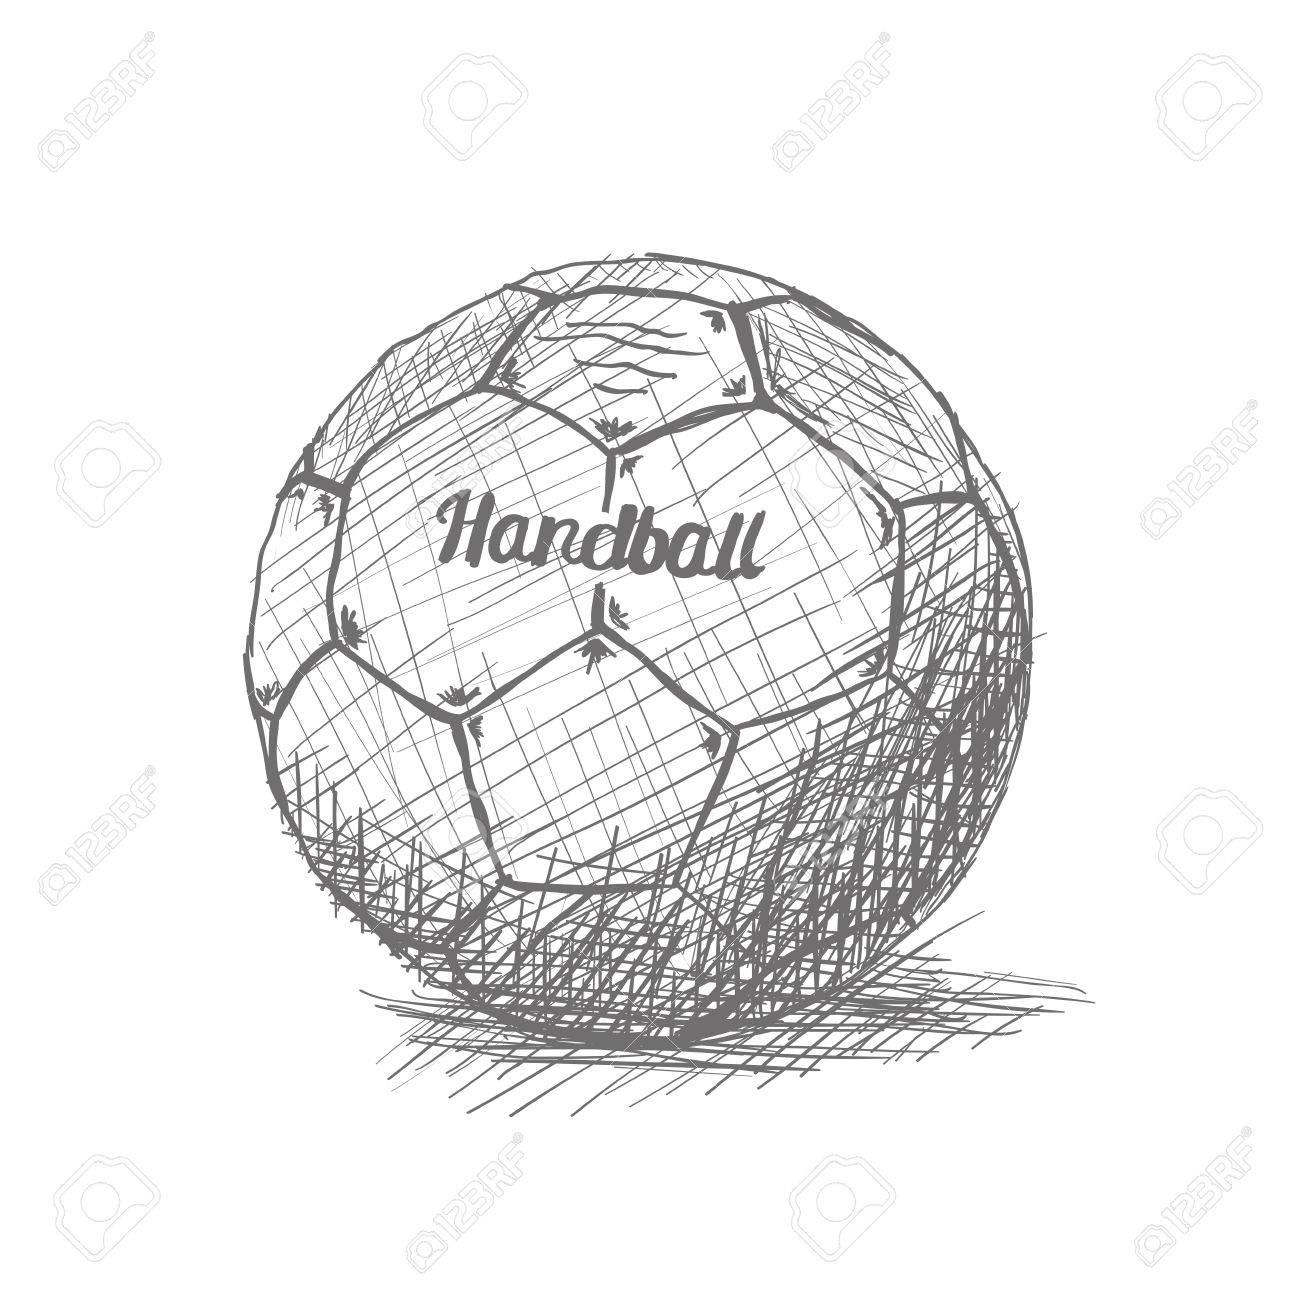 isolated sketch of a handball ball on a white background